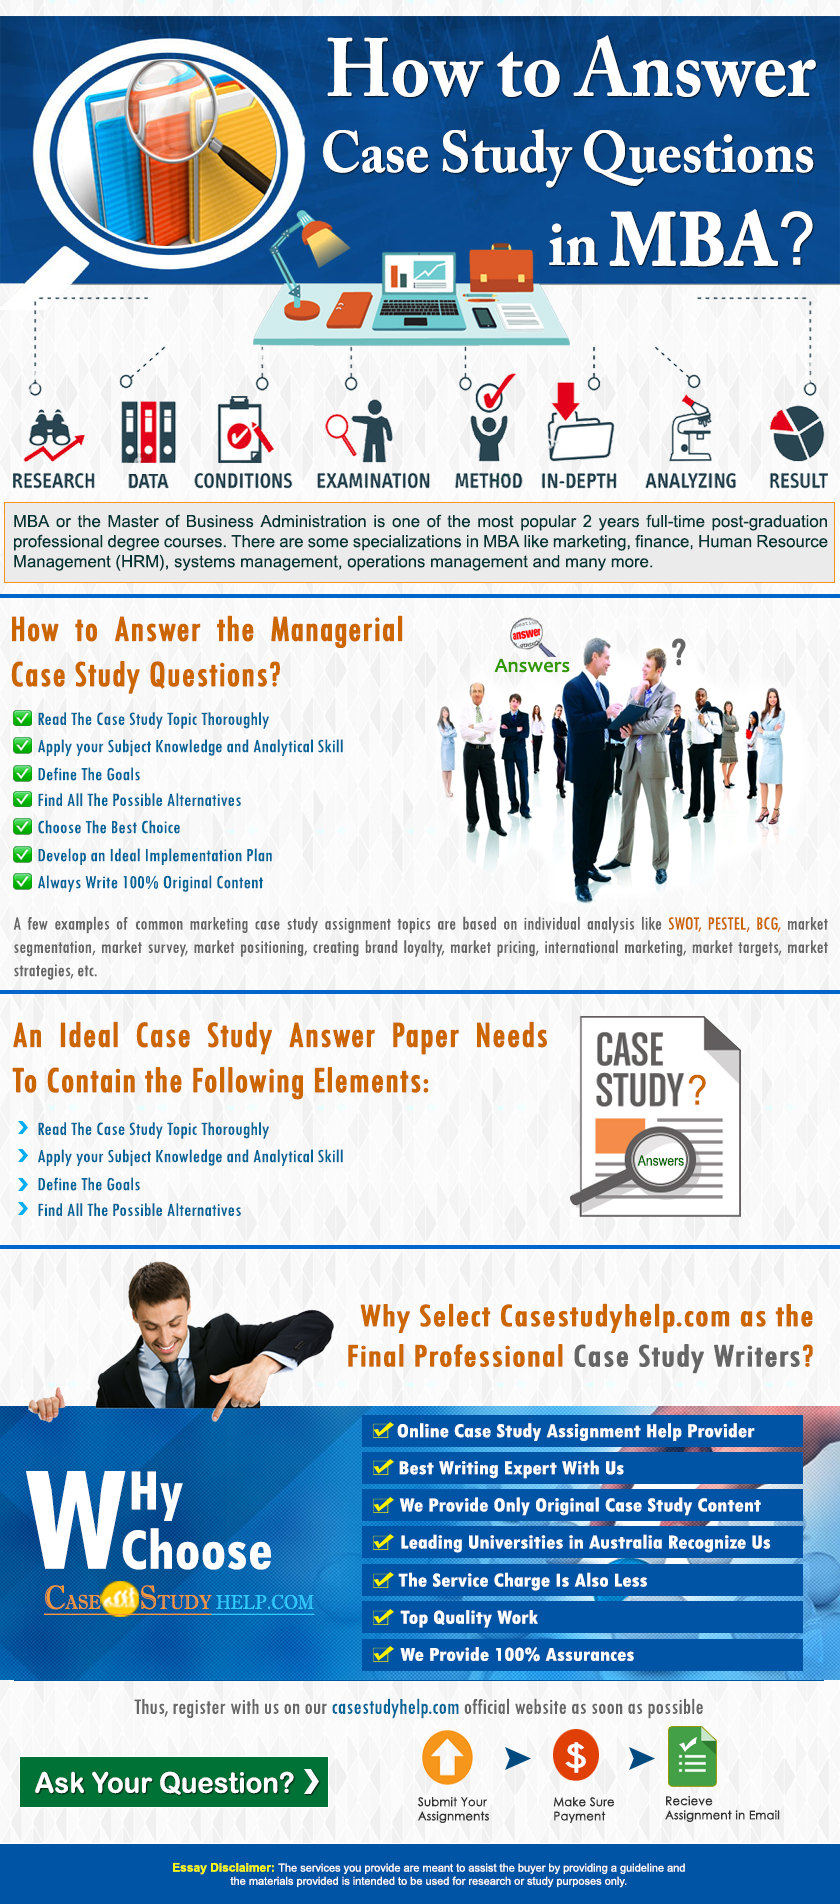 How to Answer Case Study Questions In MBA? | CaseStudyHelp Blog